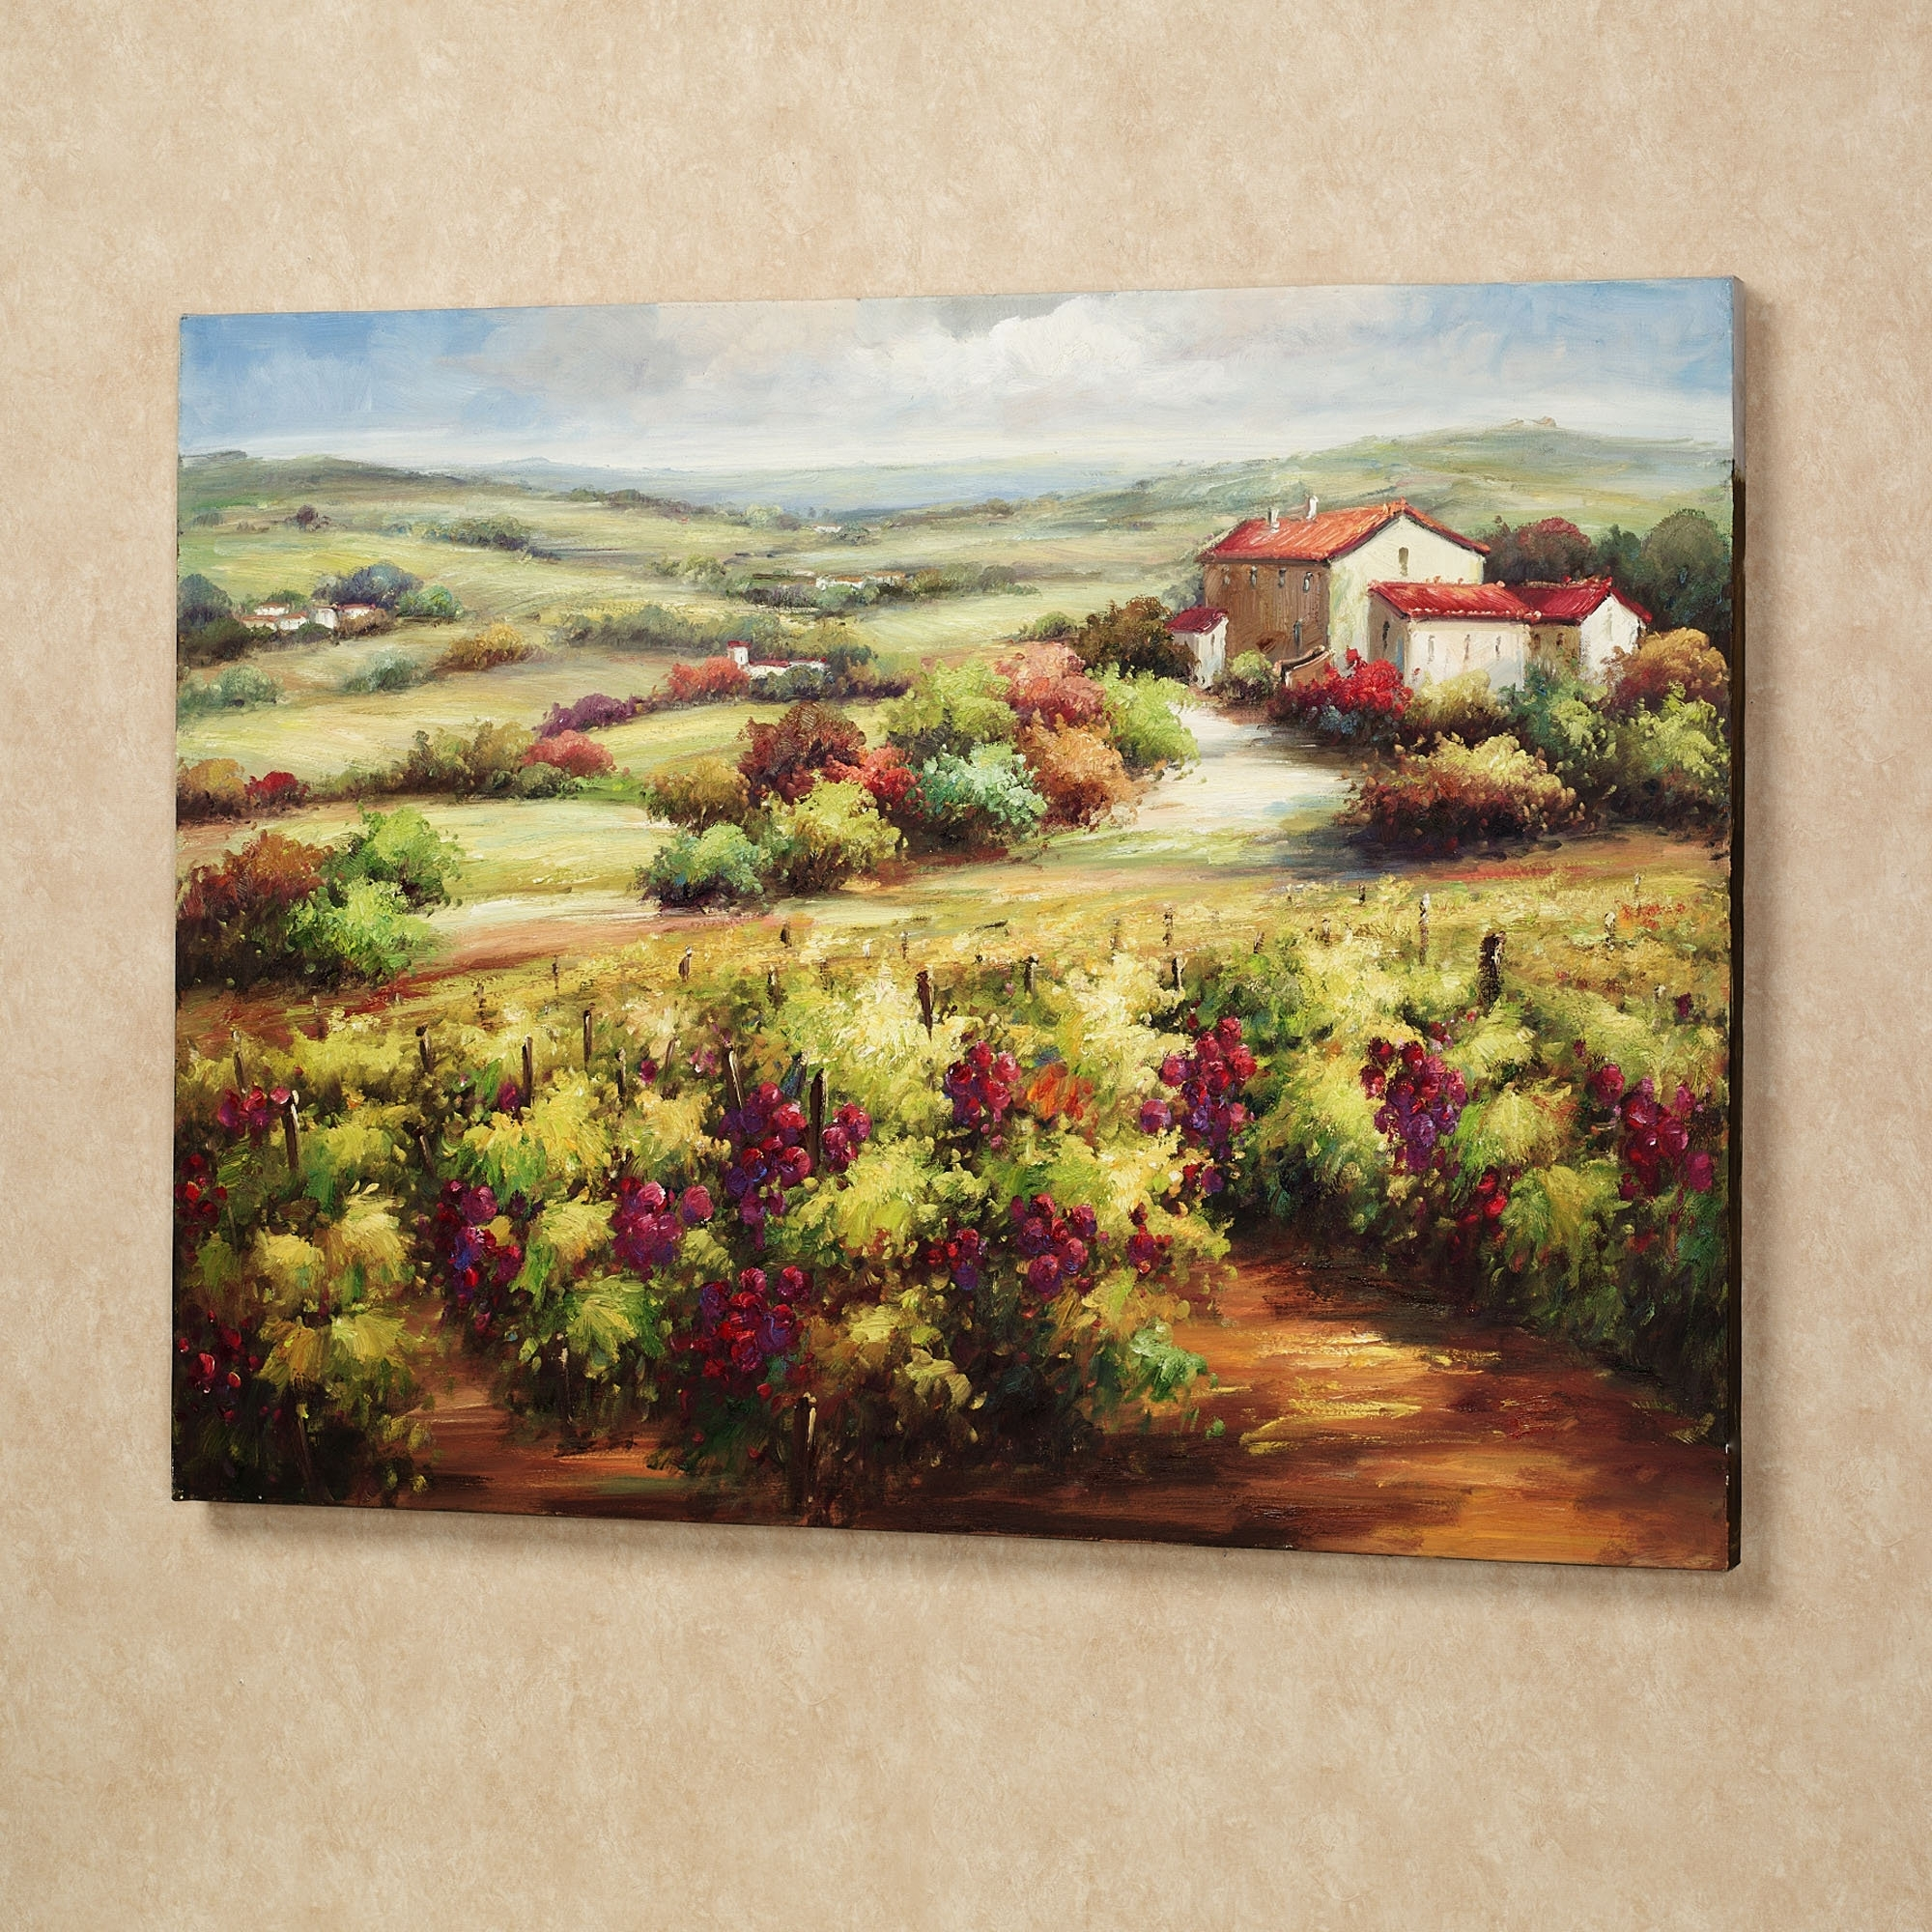 Explore Gallery of Vineyard Wall Art (Showing 3 of 15 Photos)